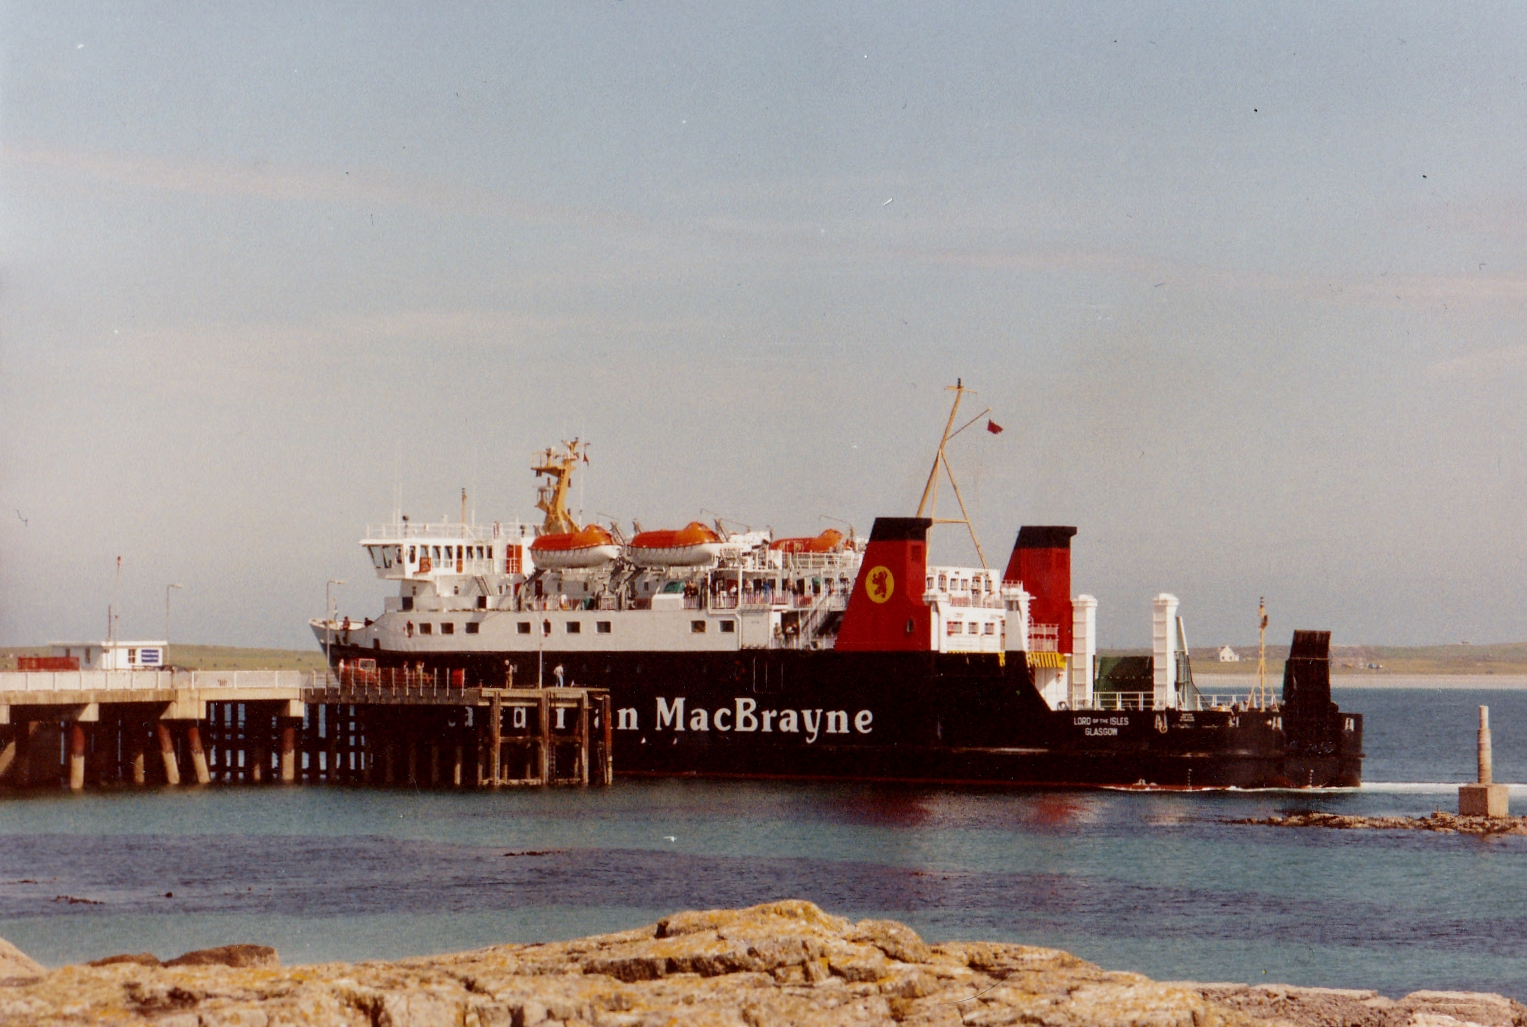 Lord of the Isles arriving at Scarinish, Tiree (Jim Aikman Smith)